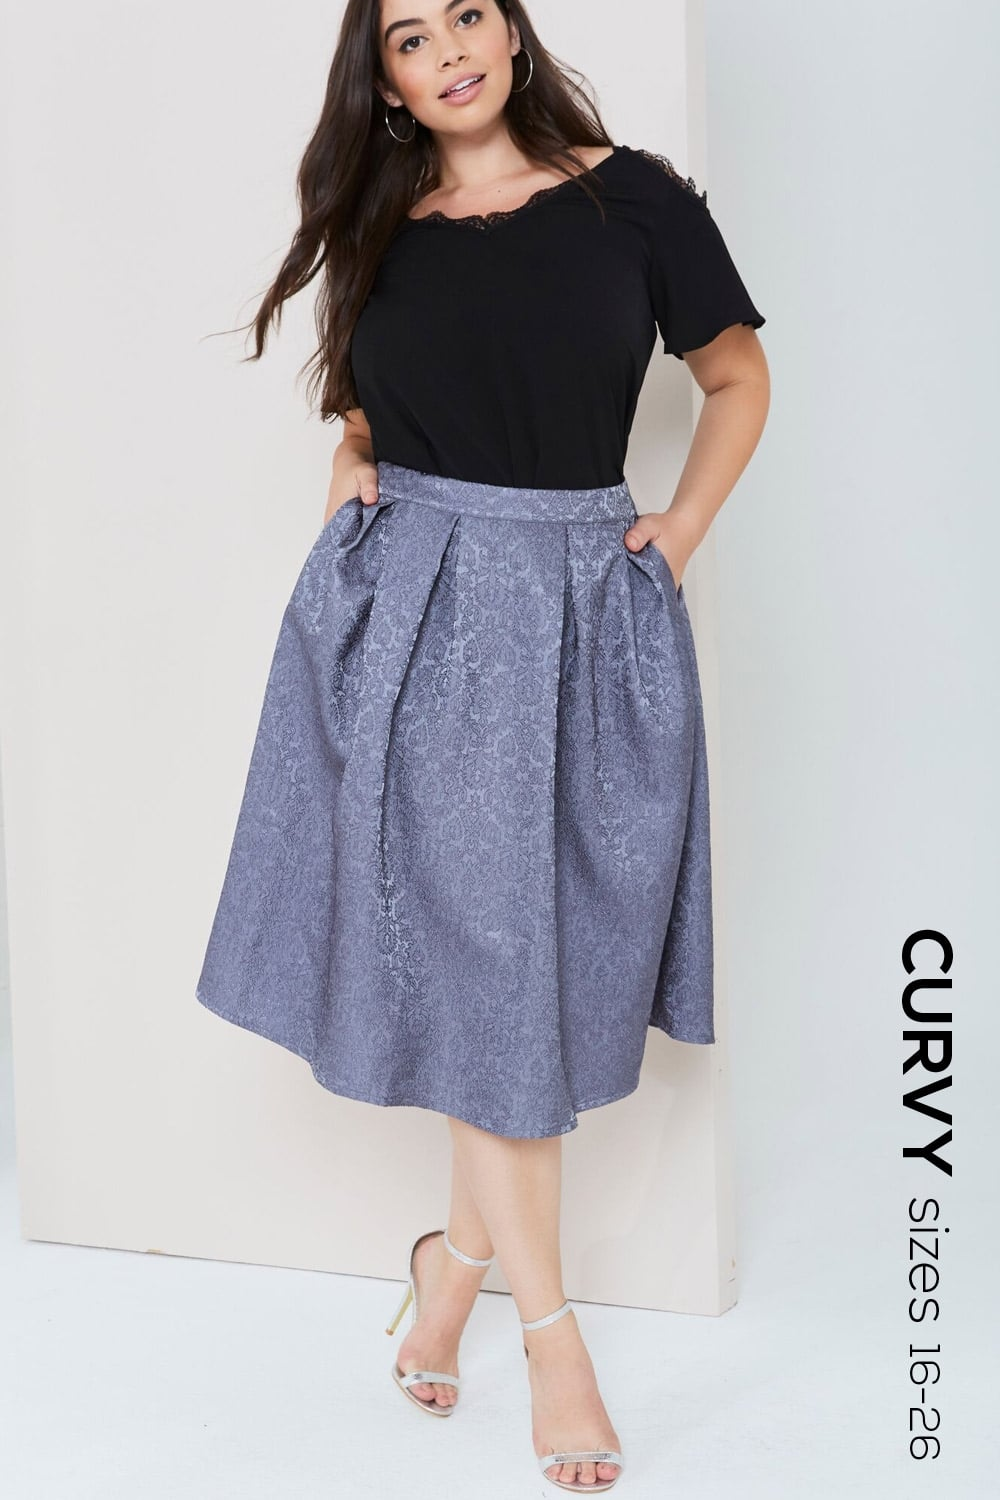 Girls On Film Curvy Grey Jacquard Full Midi Skirt - Girls On Film ...